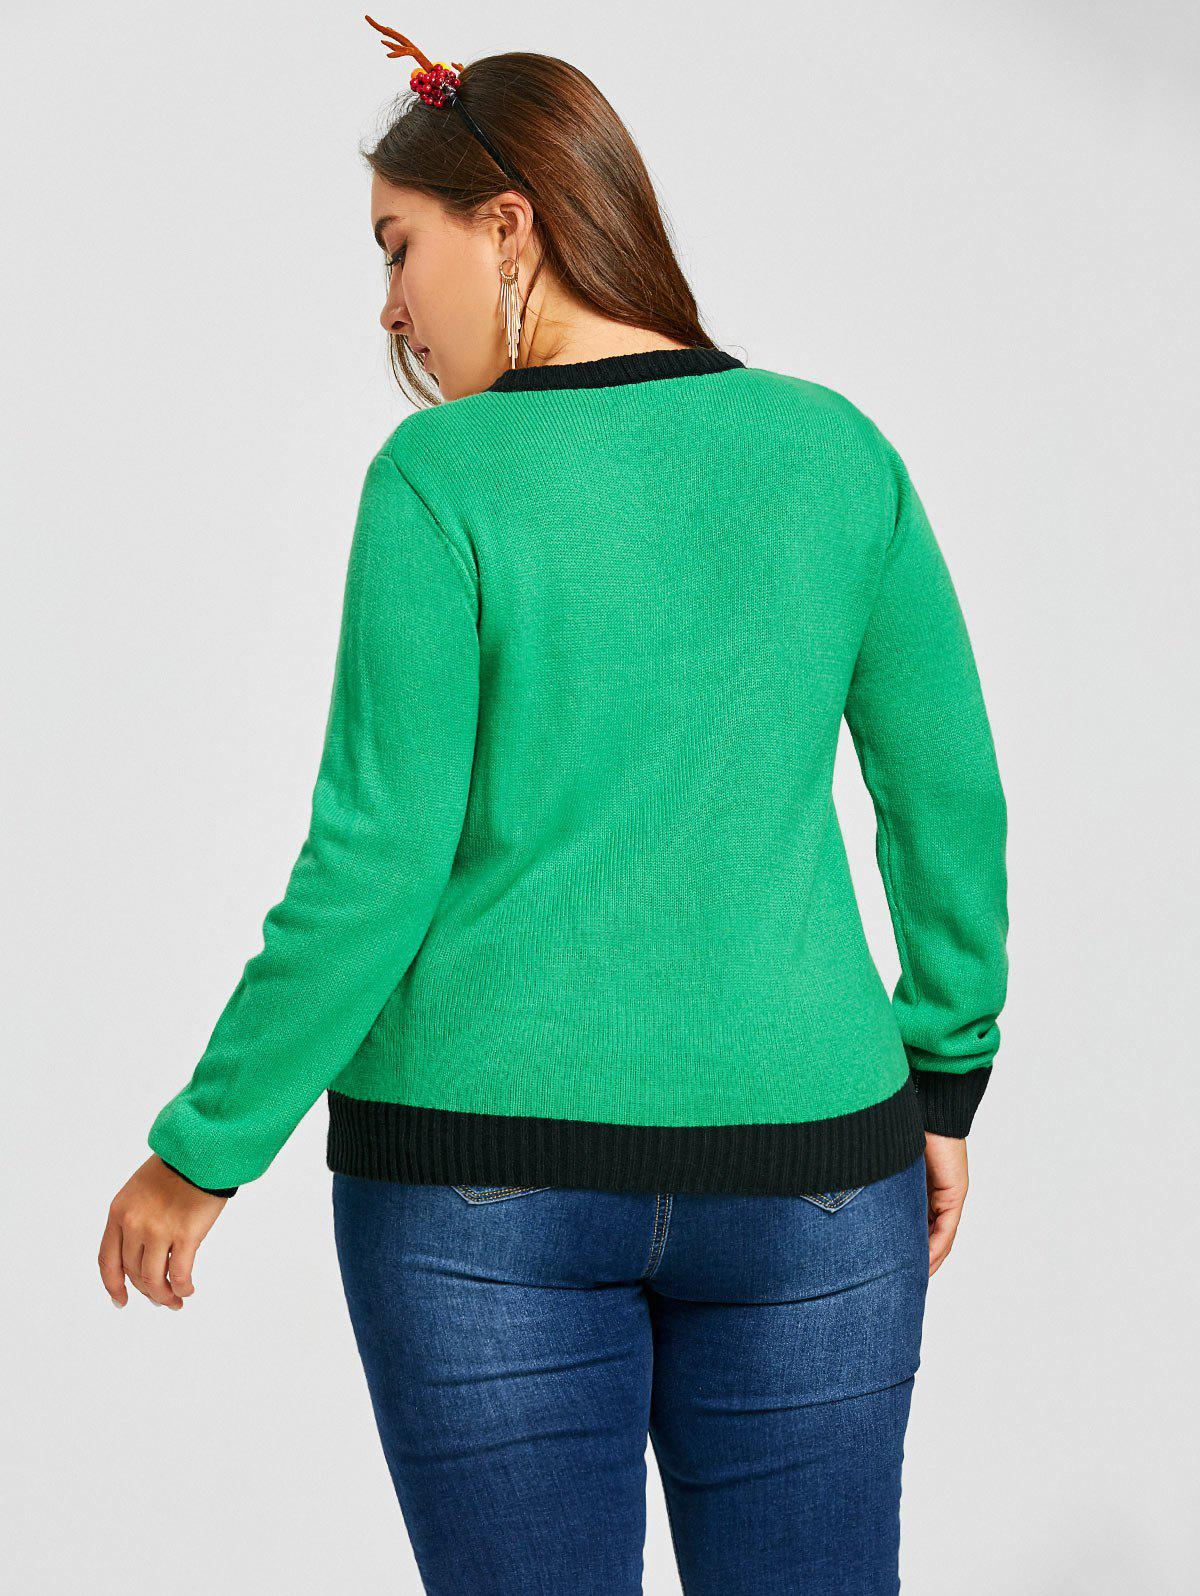 Plus Size Christmas Polka Dot Sticks Jacquard Sweater - GREEN 2XL